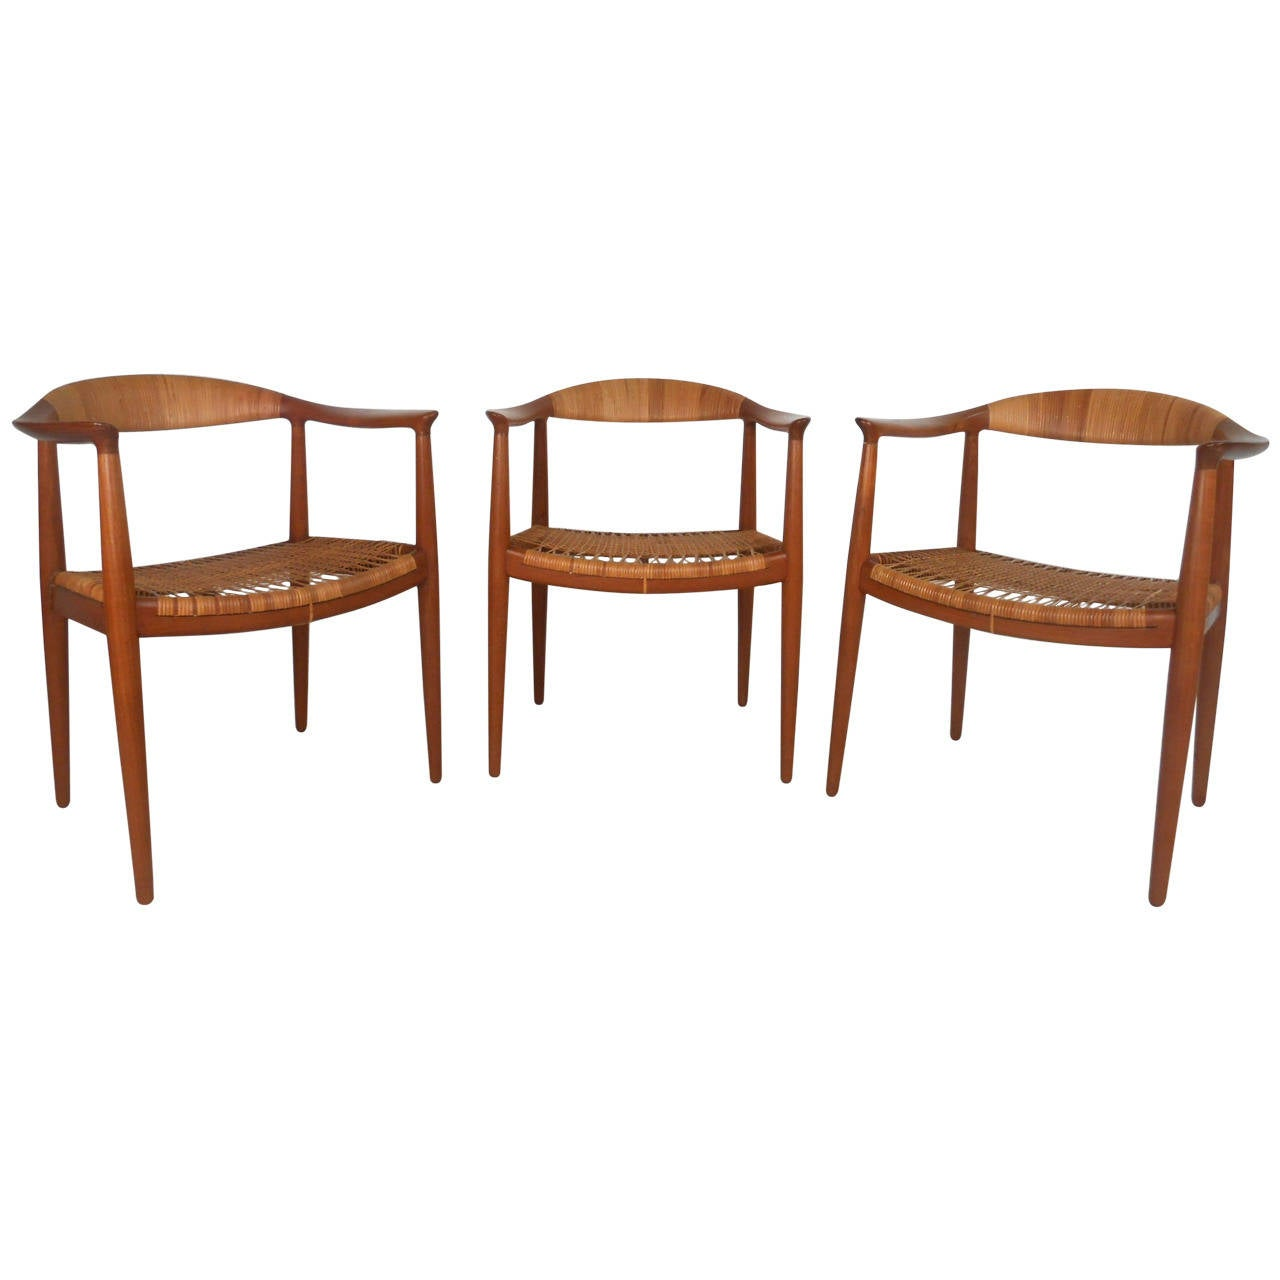 The chair round chair by hans wegner - Mid Century Modern Matching Set Of The Round Chair By Hans J